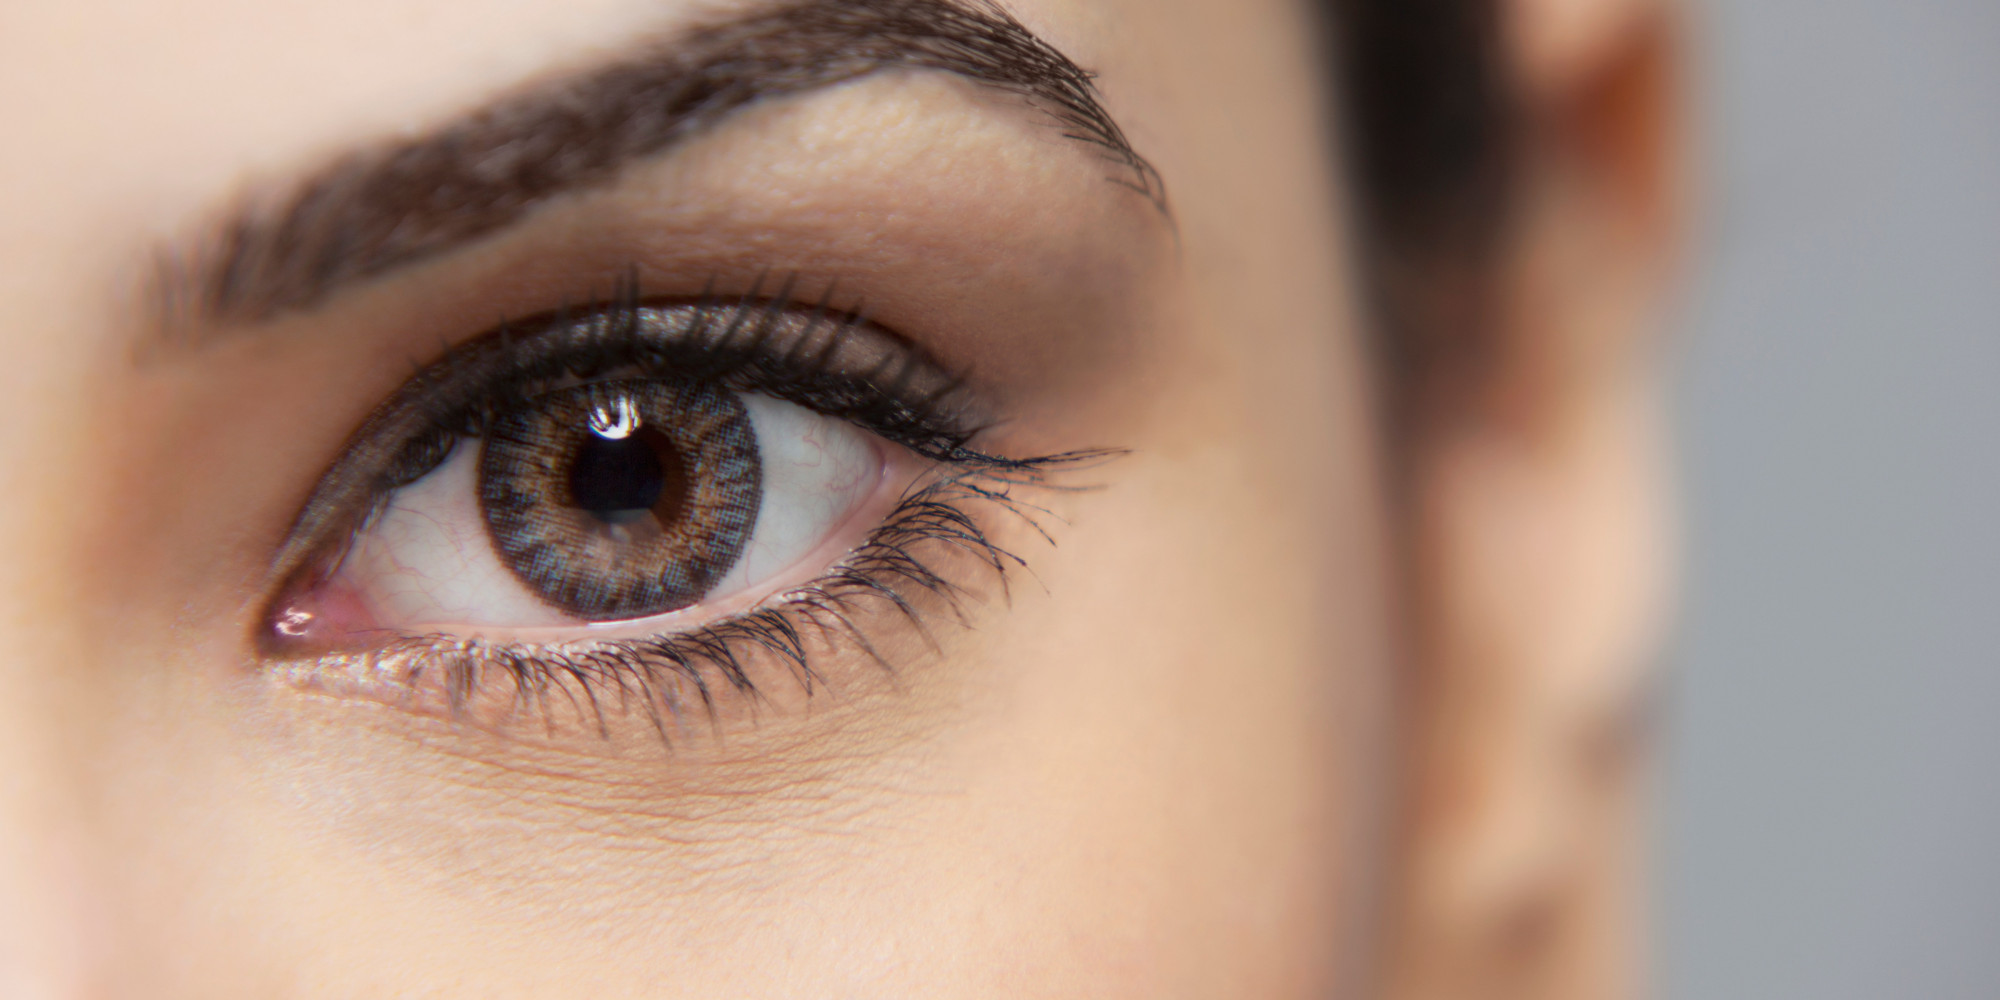 Things You Probably Didnt Know About Your Eyes HuffPost - Human eye